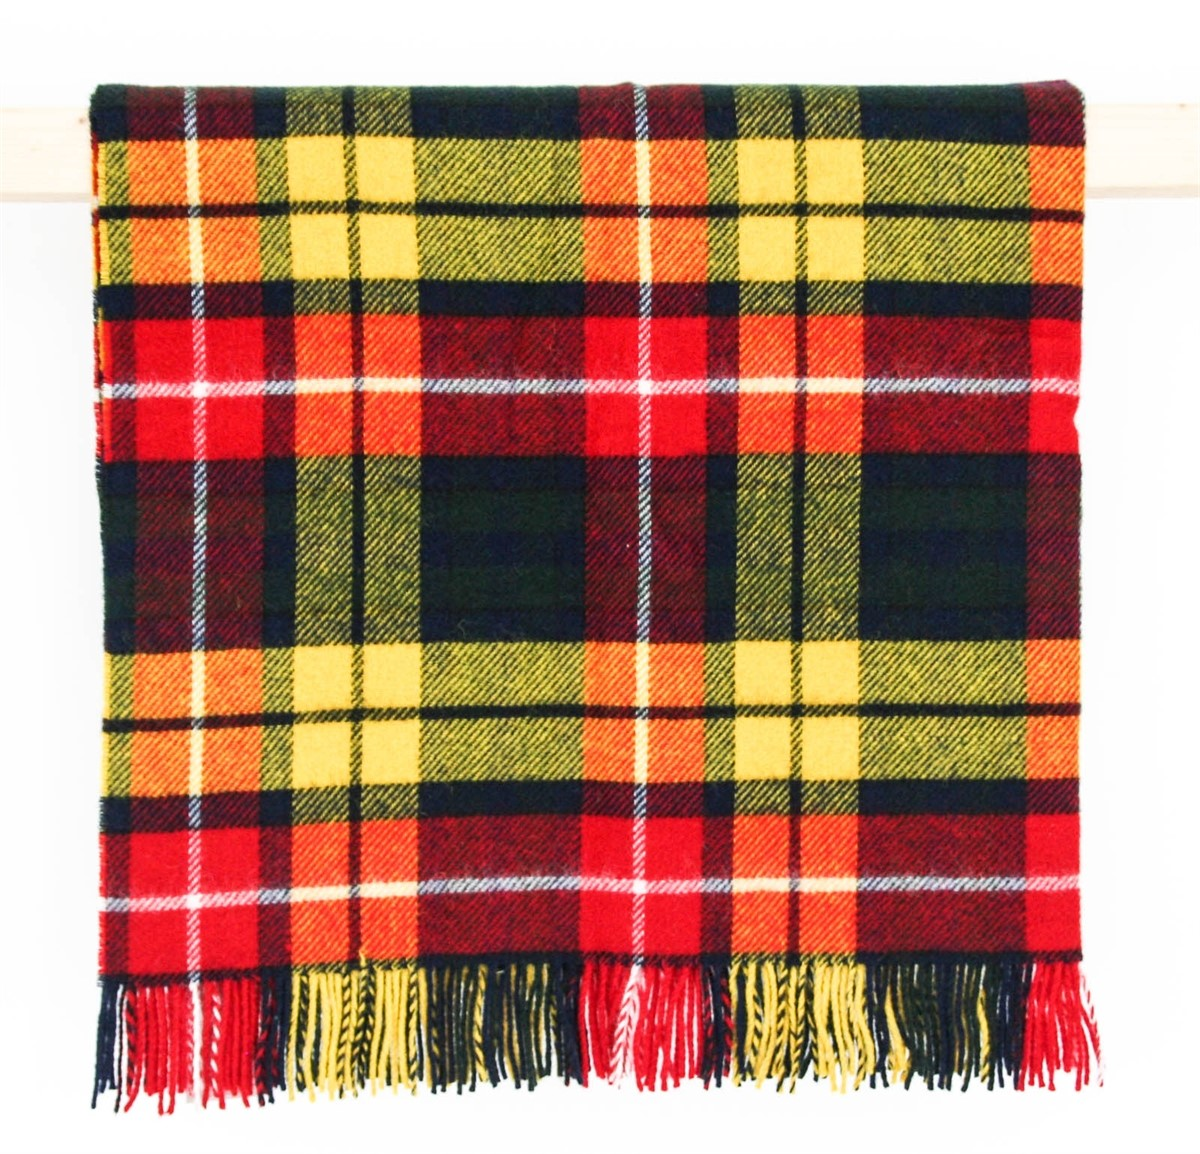 Wool Blanket Online British Made Gifts Buchanan Tartan